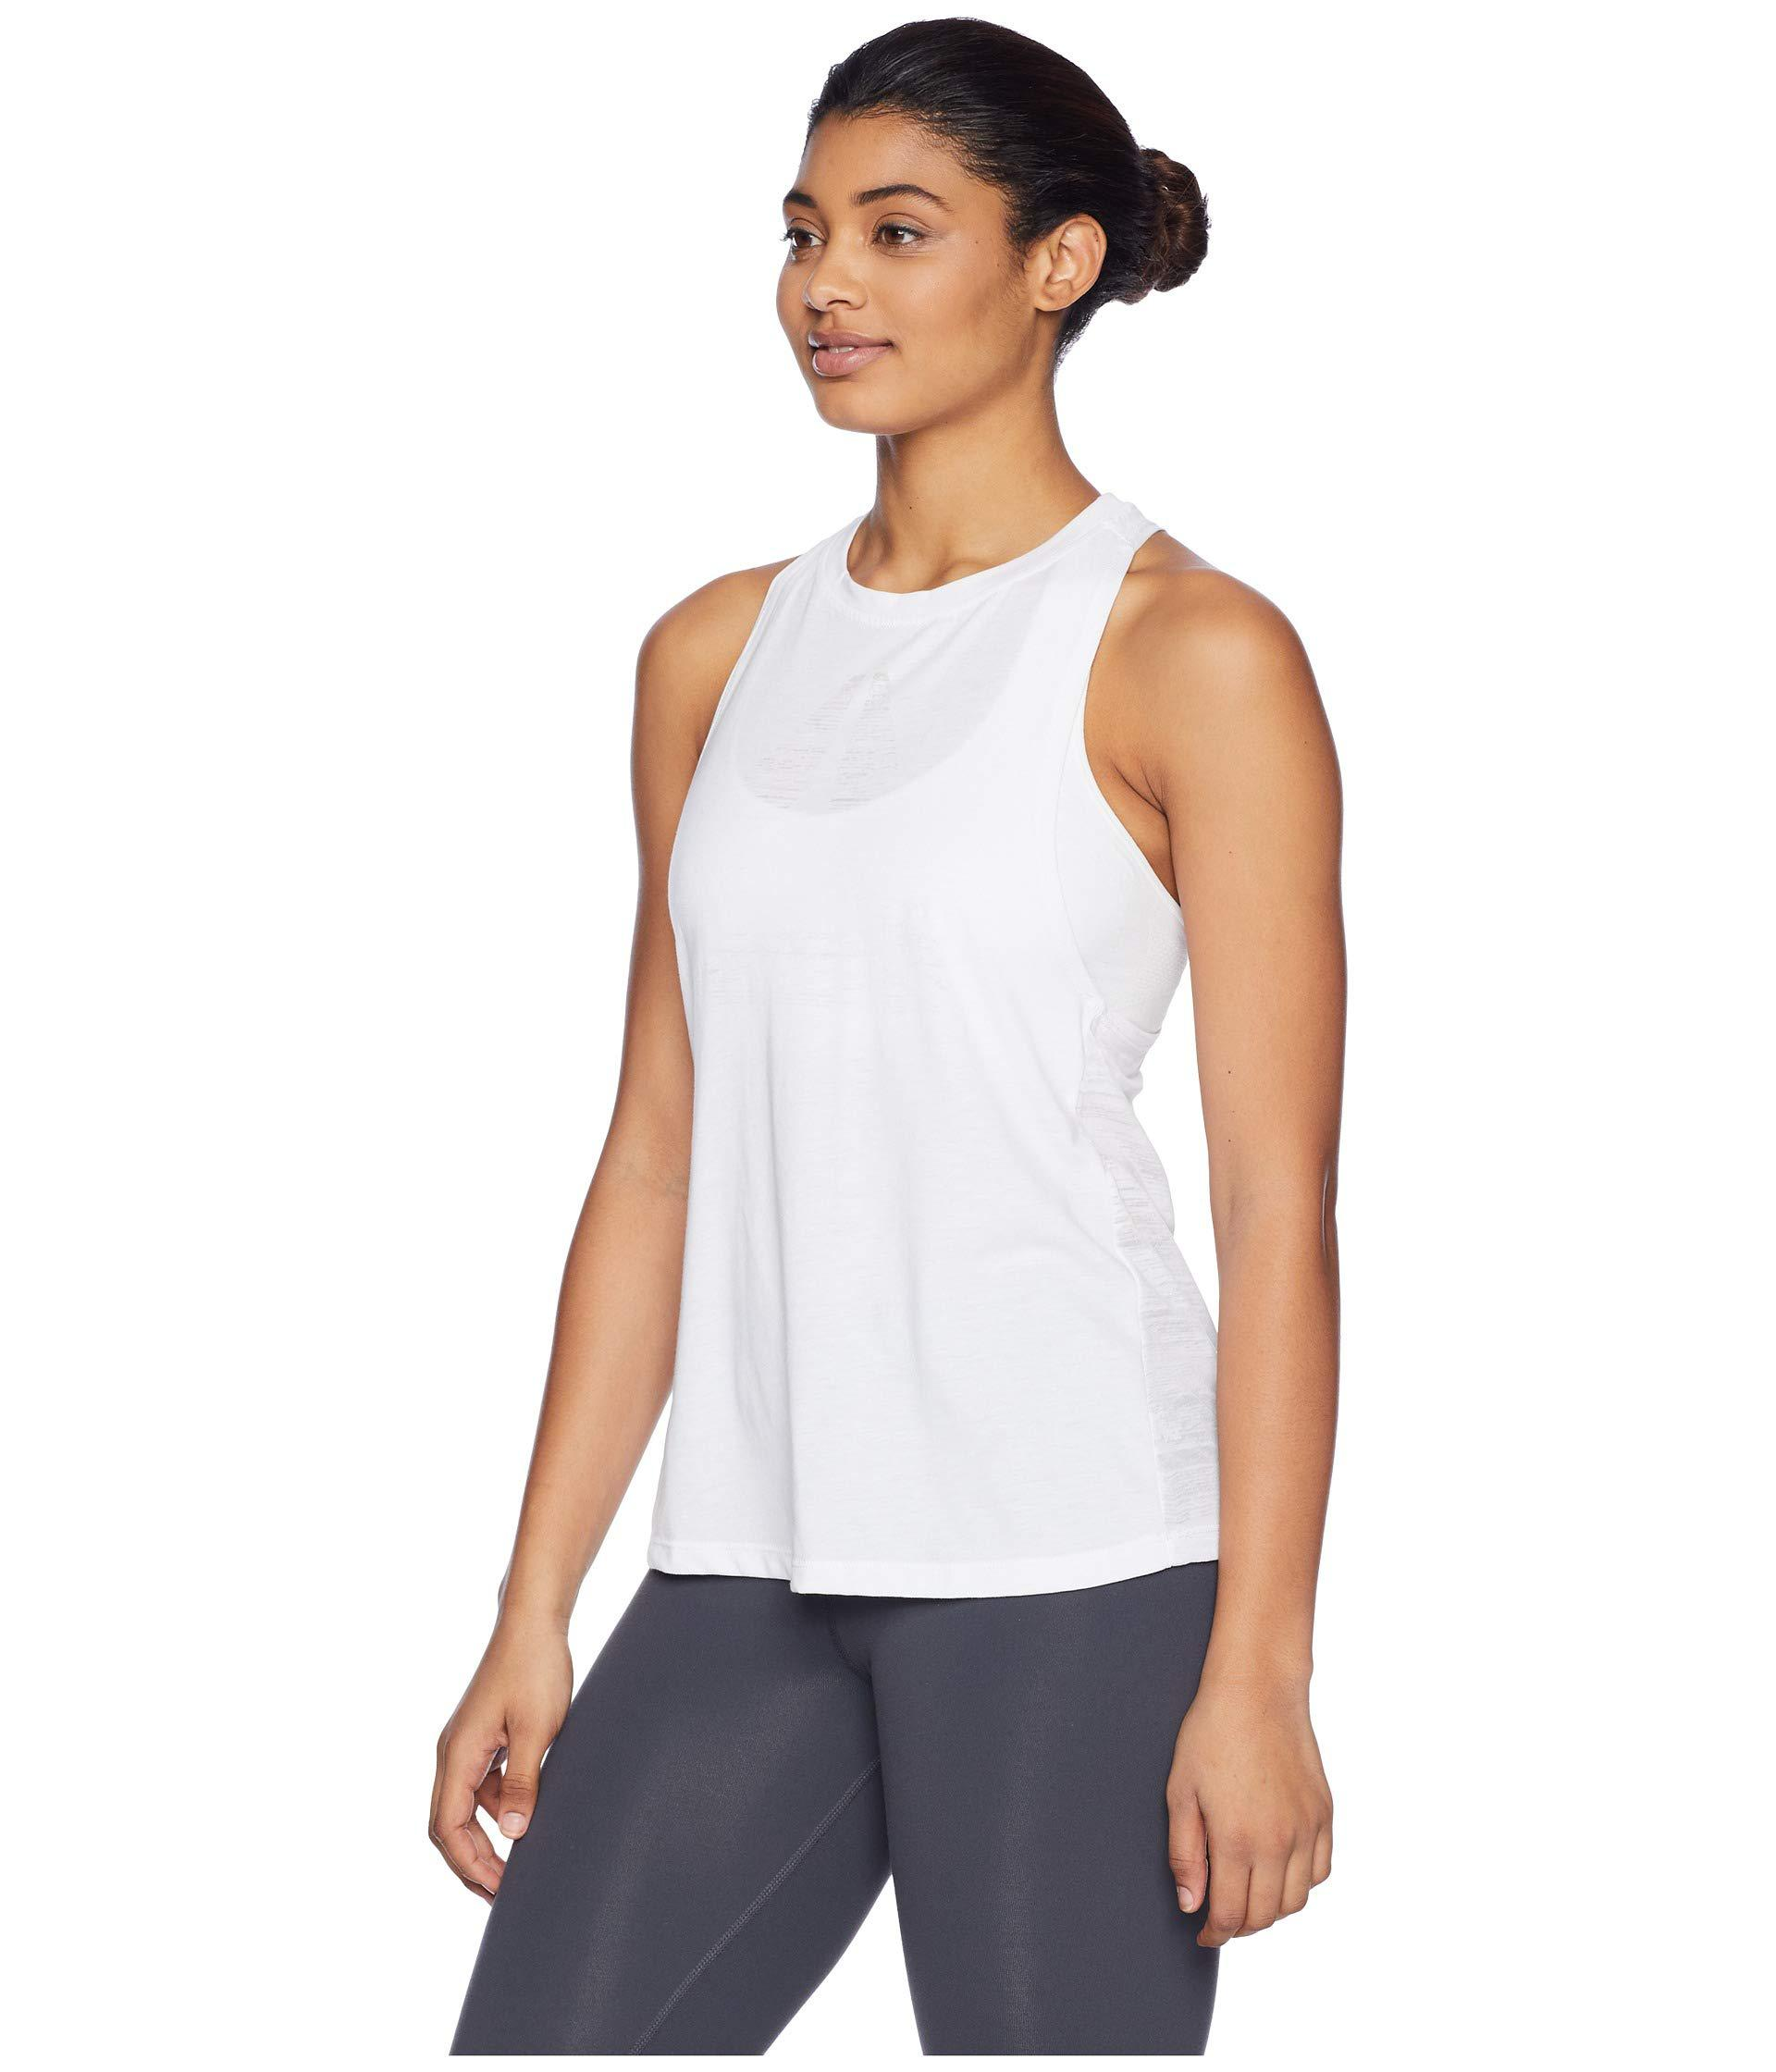 a3d724d742cb10 Lyst - Reebok Burnout Tank Top in White